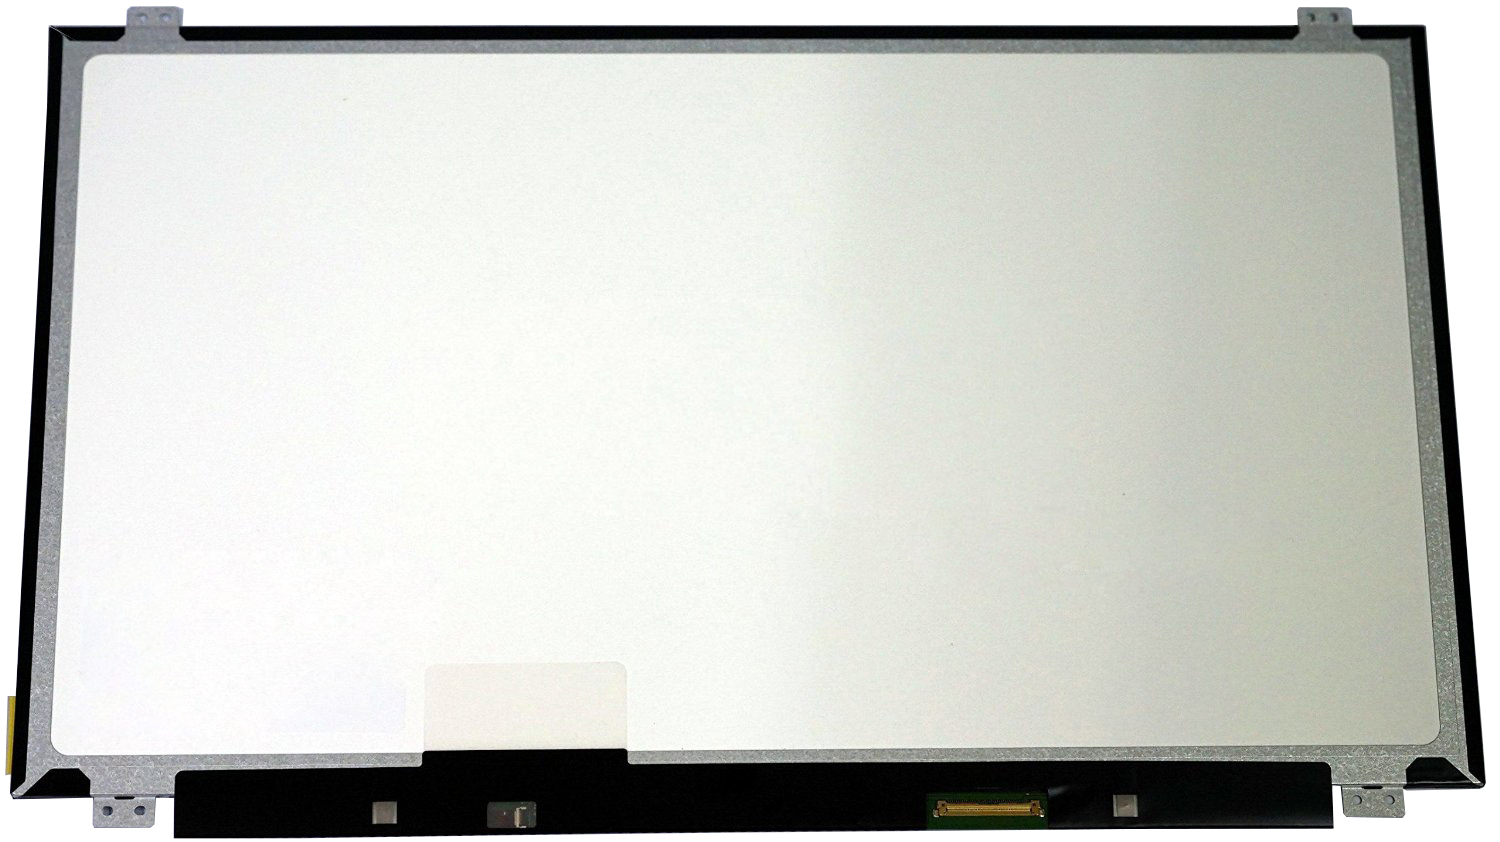 ФОТО QuYing Laptop LCD Screen for ACER ASPIRE ONE Z1401 V3-472 V3-472G V5-471 V5-471G V3-471 V3-471G V5-431 (14.0 1366x768 40pin)